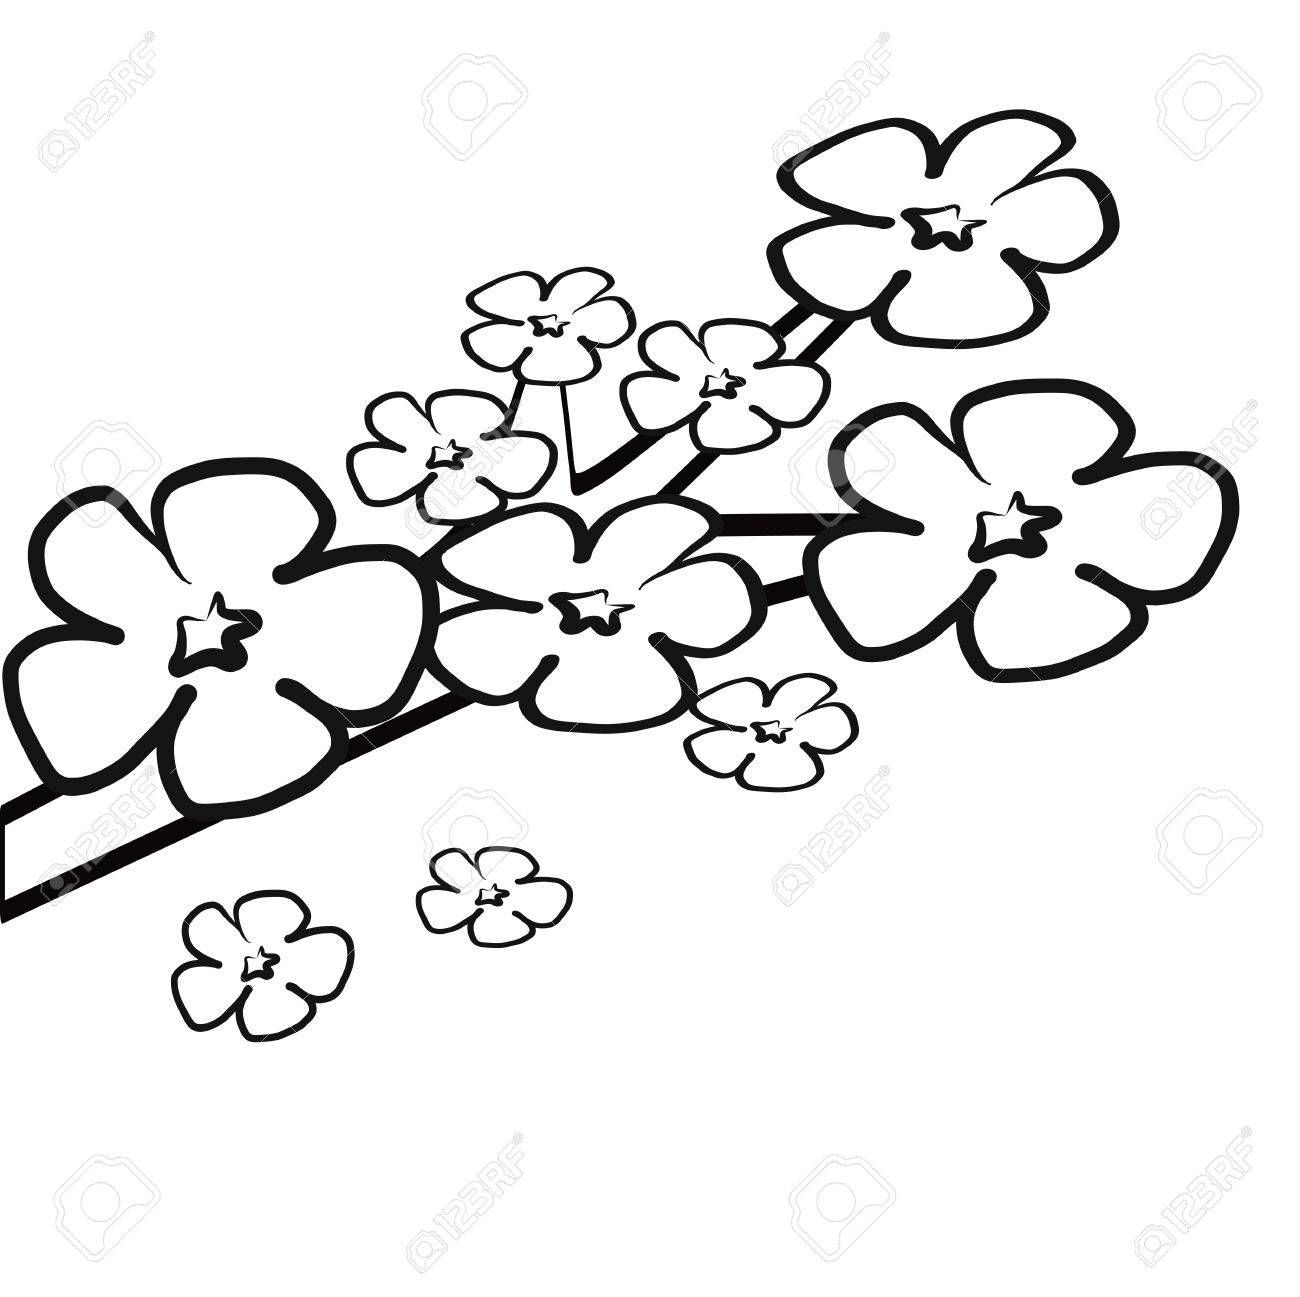 1300x1297 Colorless Cherry Blossom Flower On Branch For Coloring Book